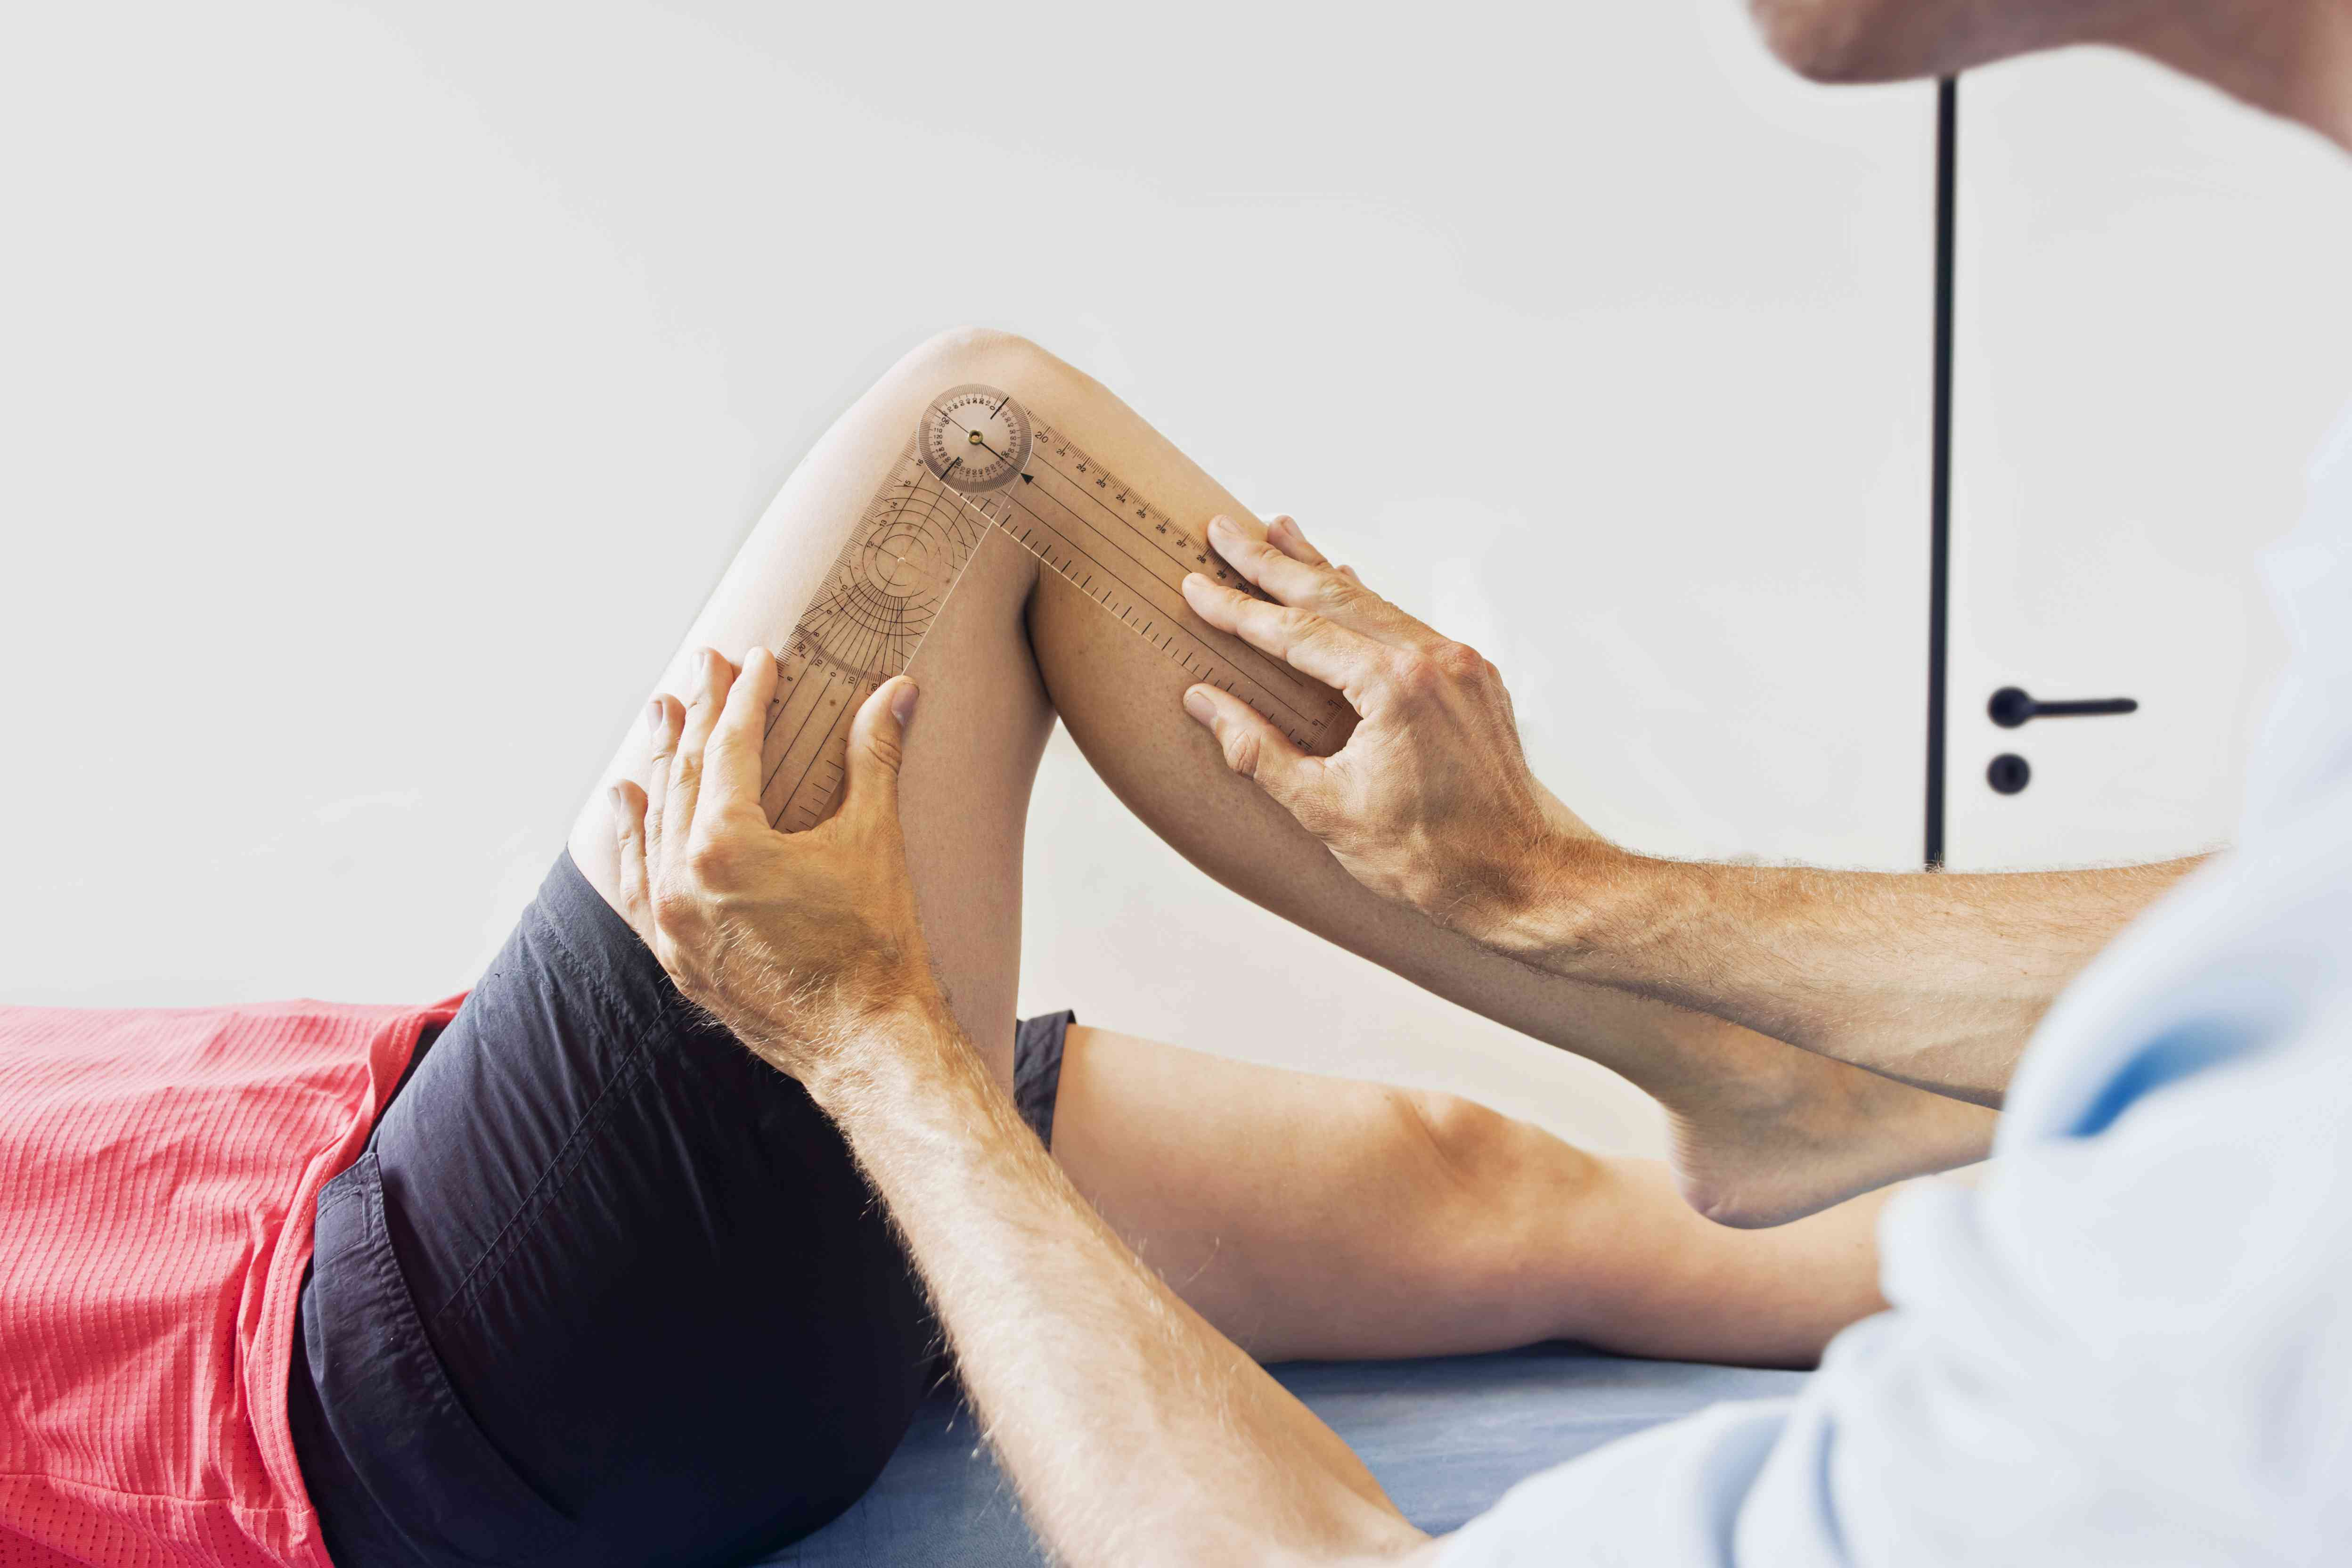 Doctor measuring person's knee range of motion